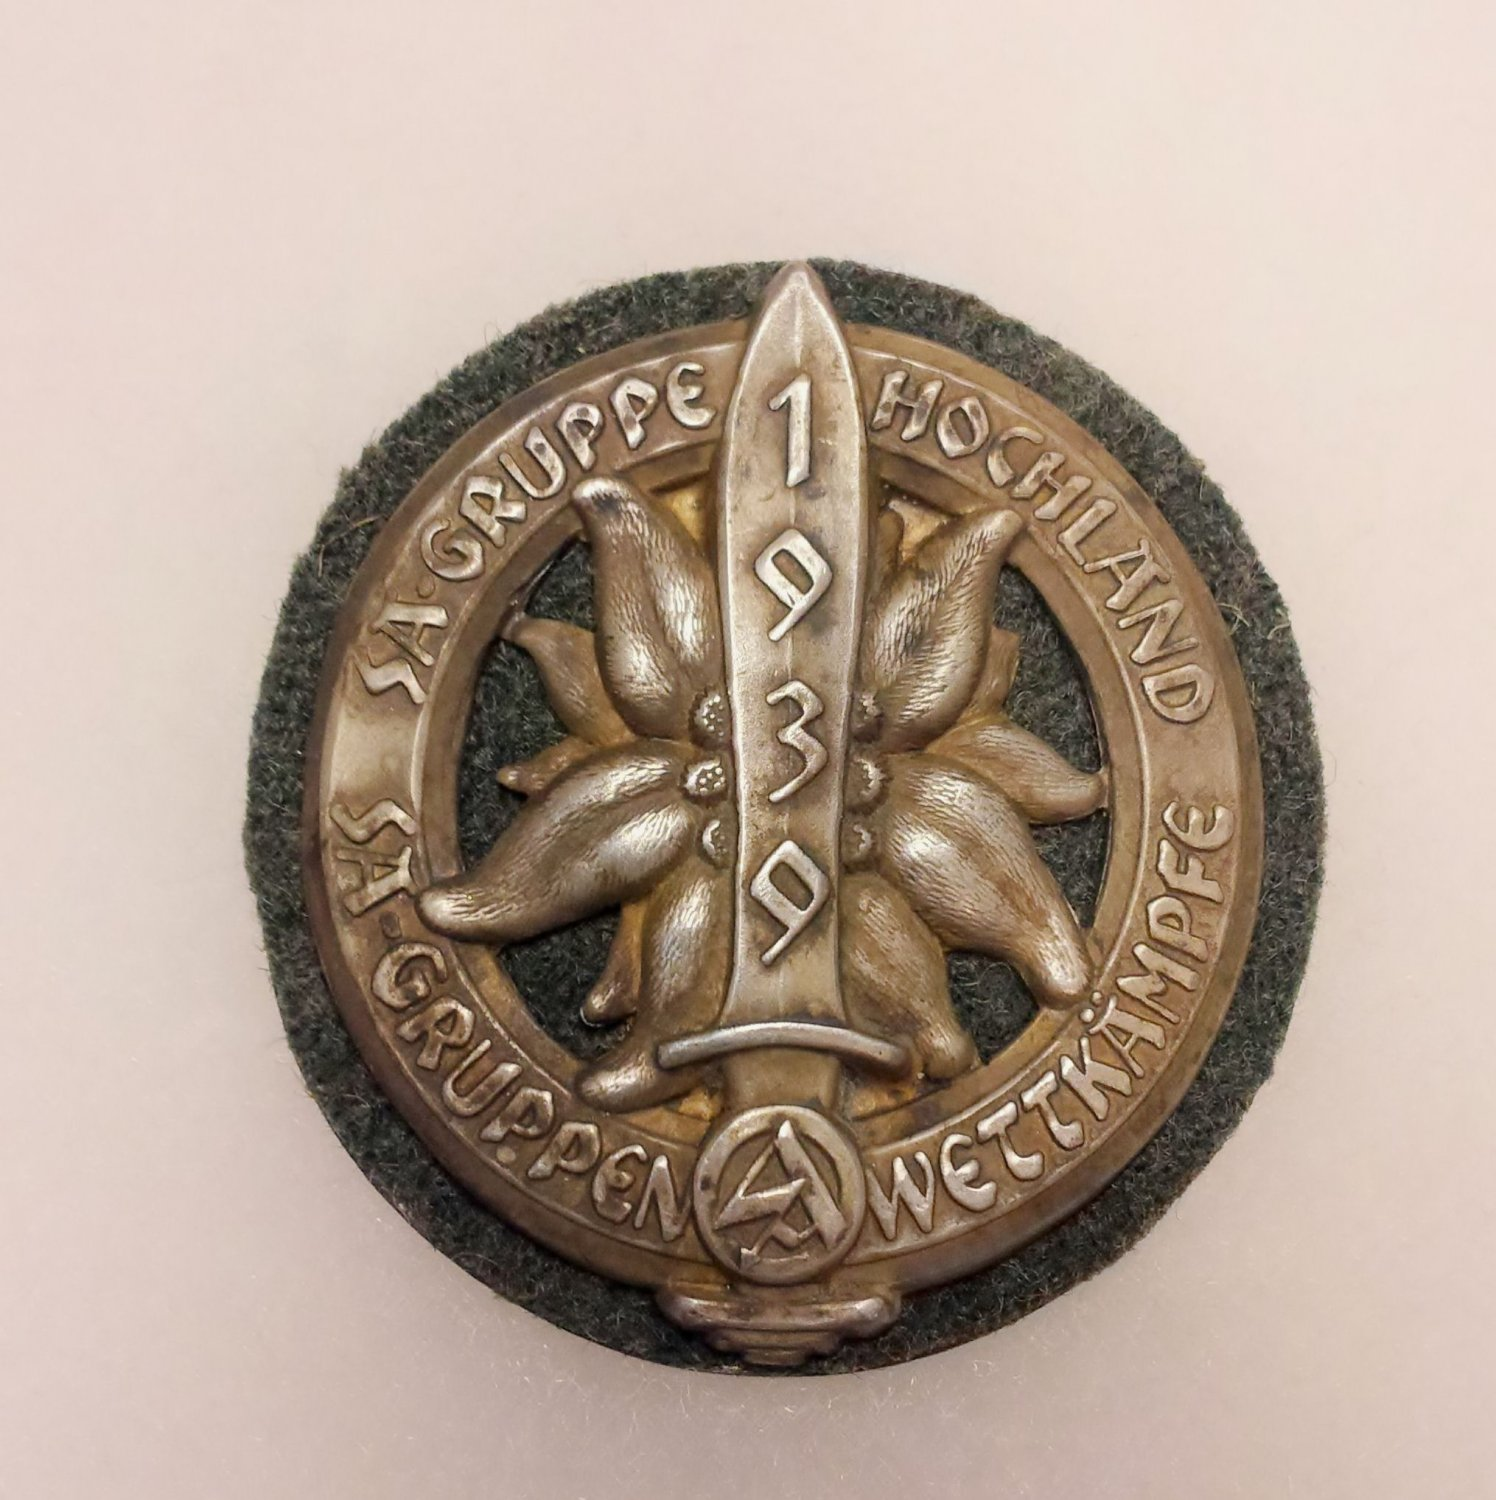 WWII GERMAN SA HIGHLAND CAMP BADGE